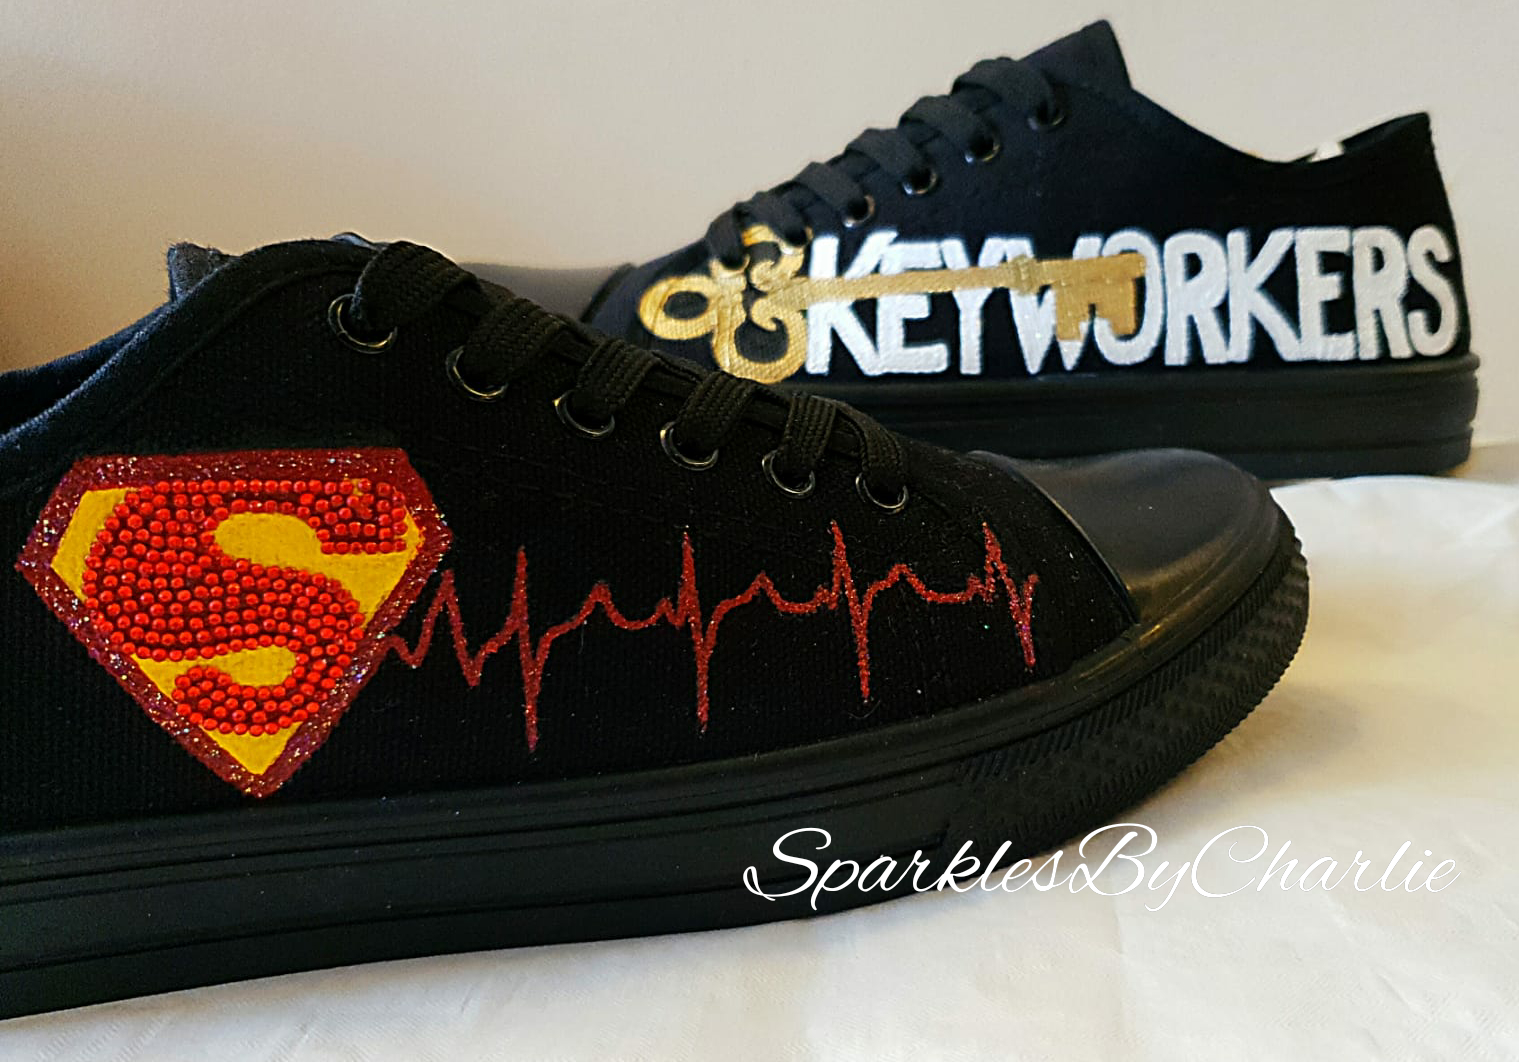 Key Worker Superhero Shoes